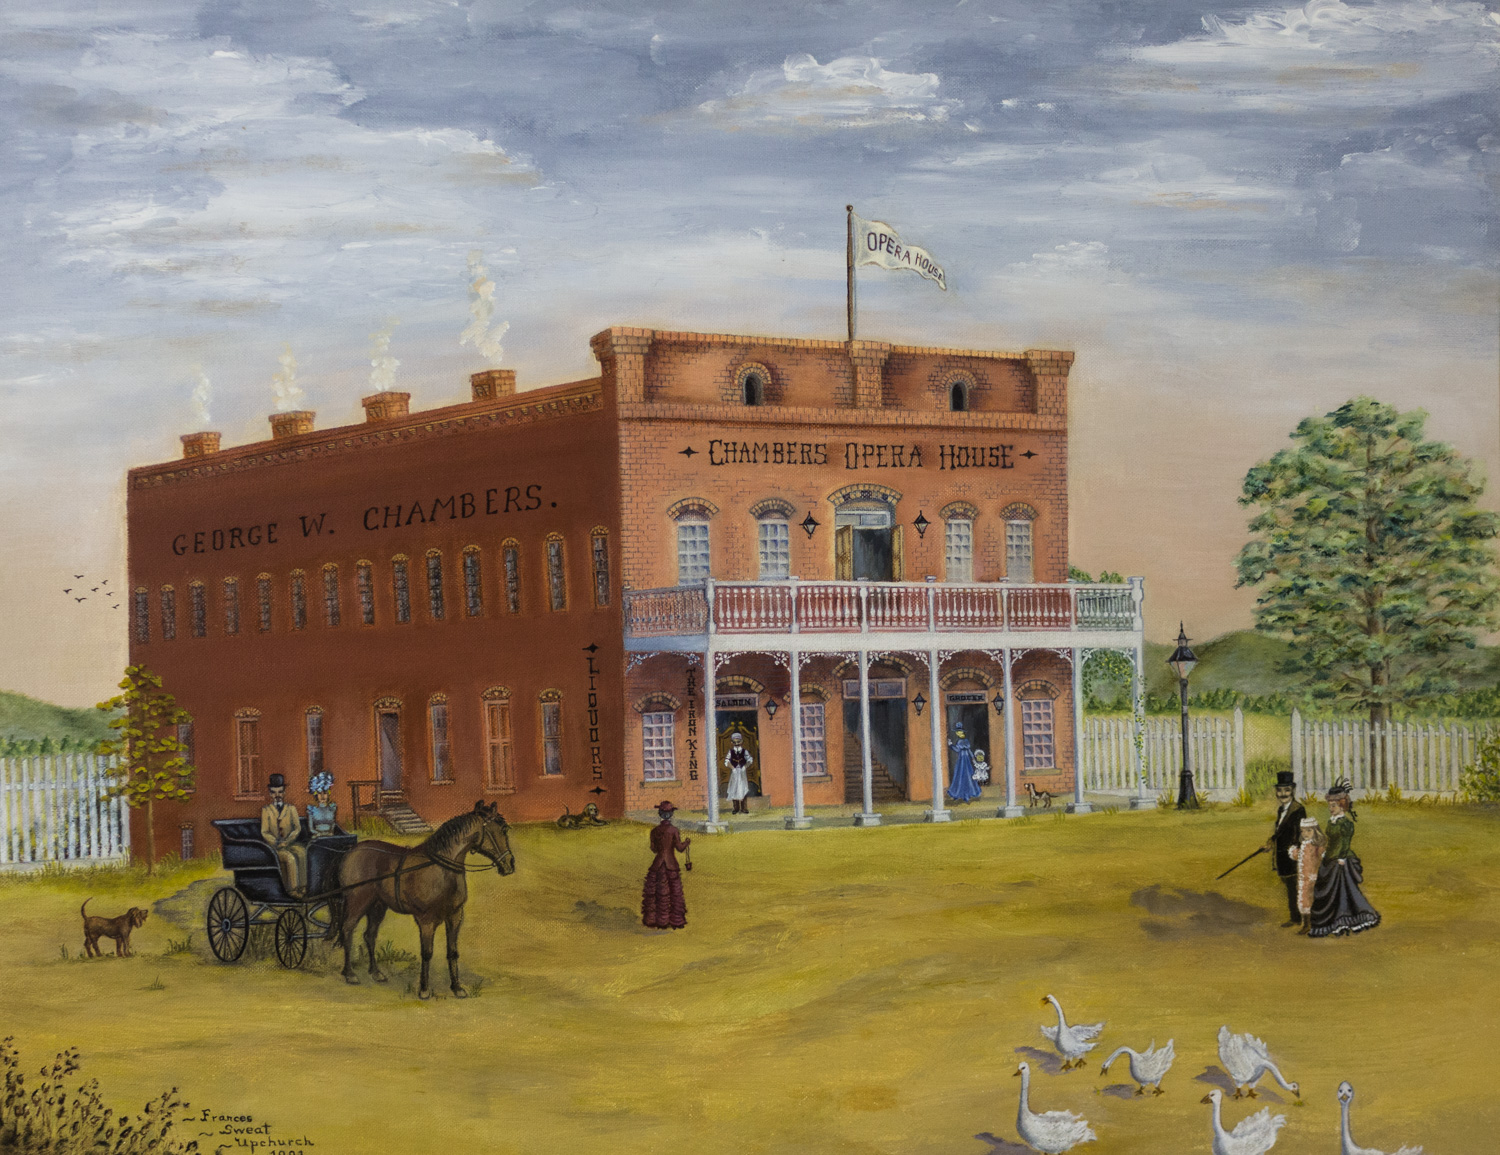 The Chambers Opera House by Frances Sweat Upchurch, 1991, 11 Paintings collection from Foundation